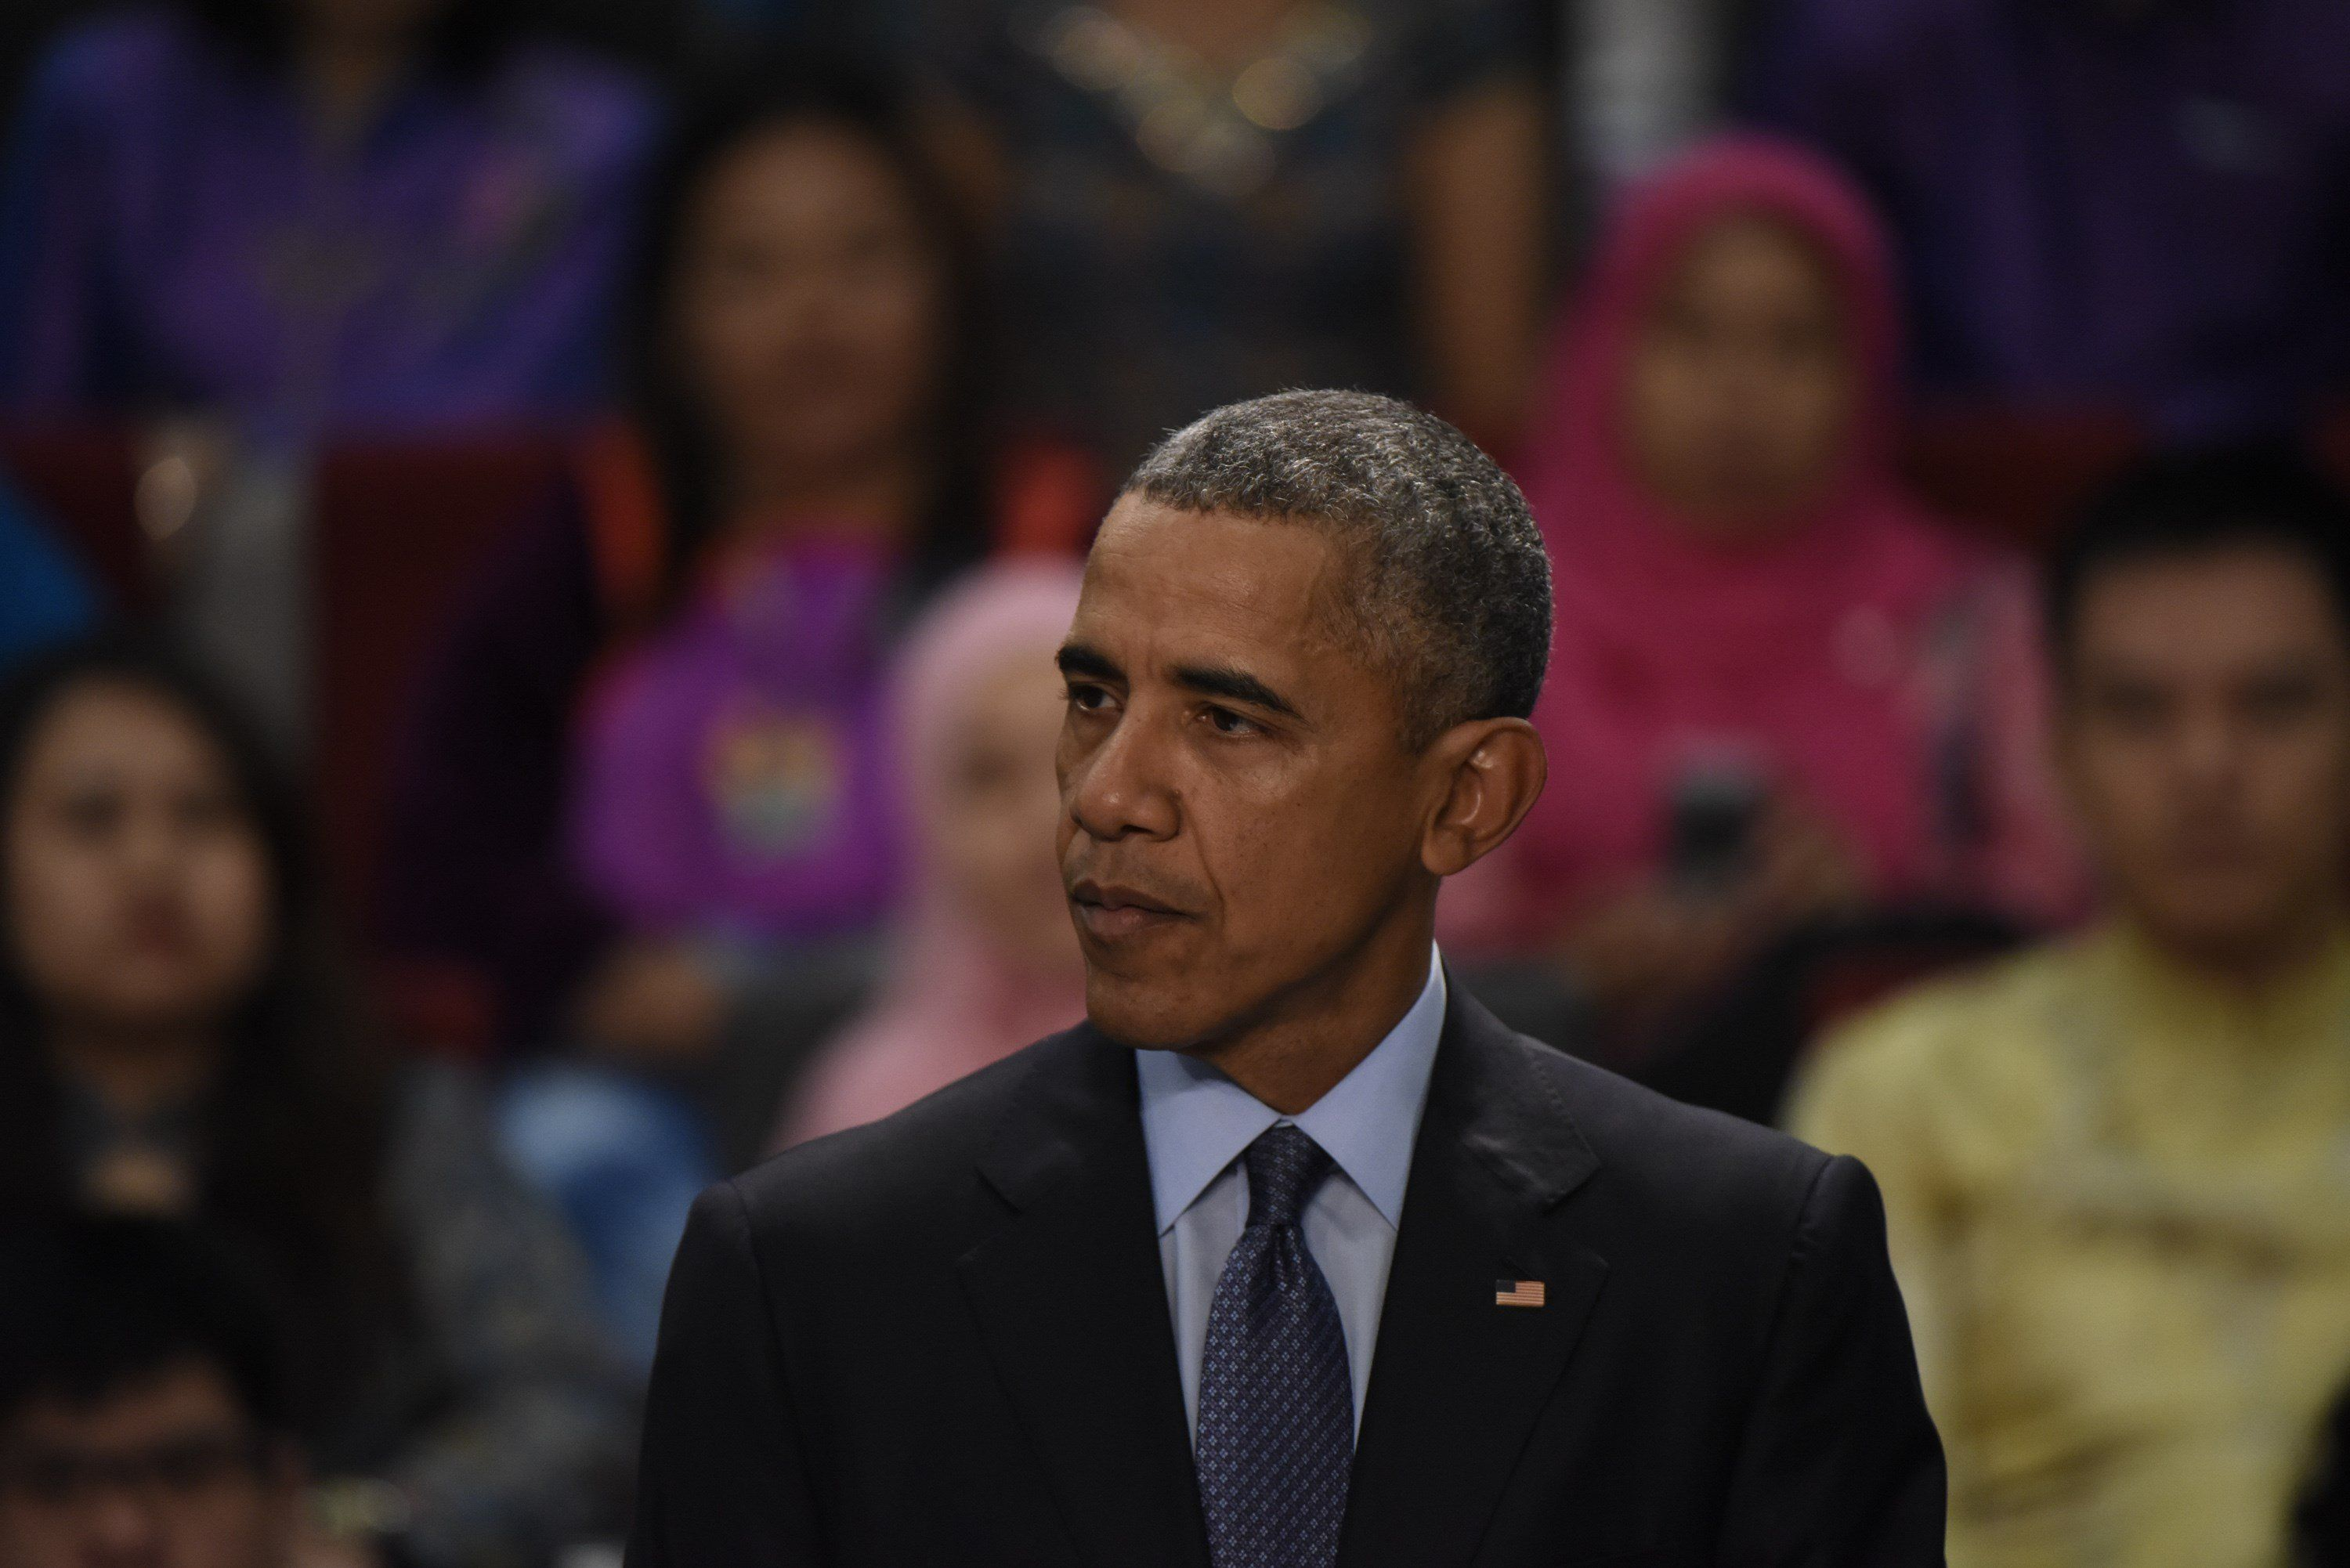 US President Barack Obama answers a question during a town hall with Young Southeast Asia Leaders Initiative (YSEALI) at Taylor's University in Kuala Lumpur on November 20, 2015. US President Barack Obama arrived in Malaysia to attend the 27th Association of South East Asian Nations (ASEAN) Summit being held from November 18-22. AFP PHOTO / FRED DUFOUR        (Photo credit should read FRED DUFOUR,FRED DEFOUR/AFP/Getty Images)